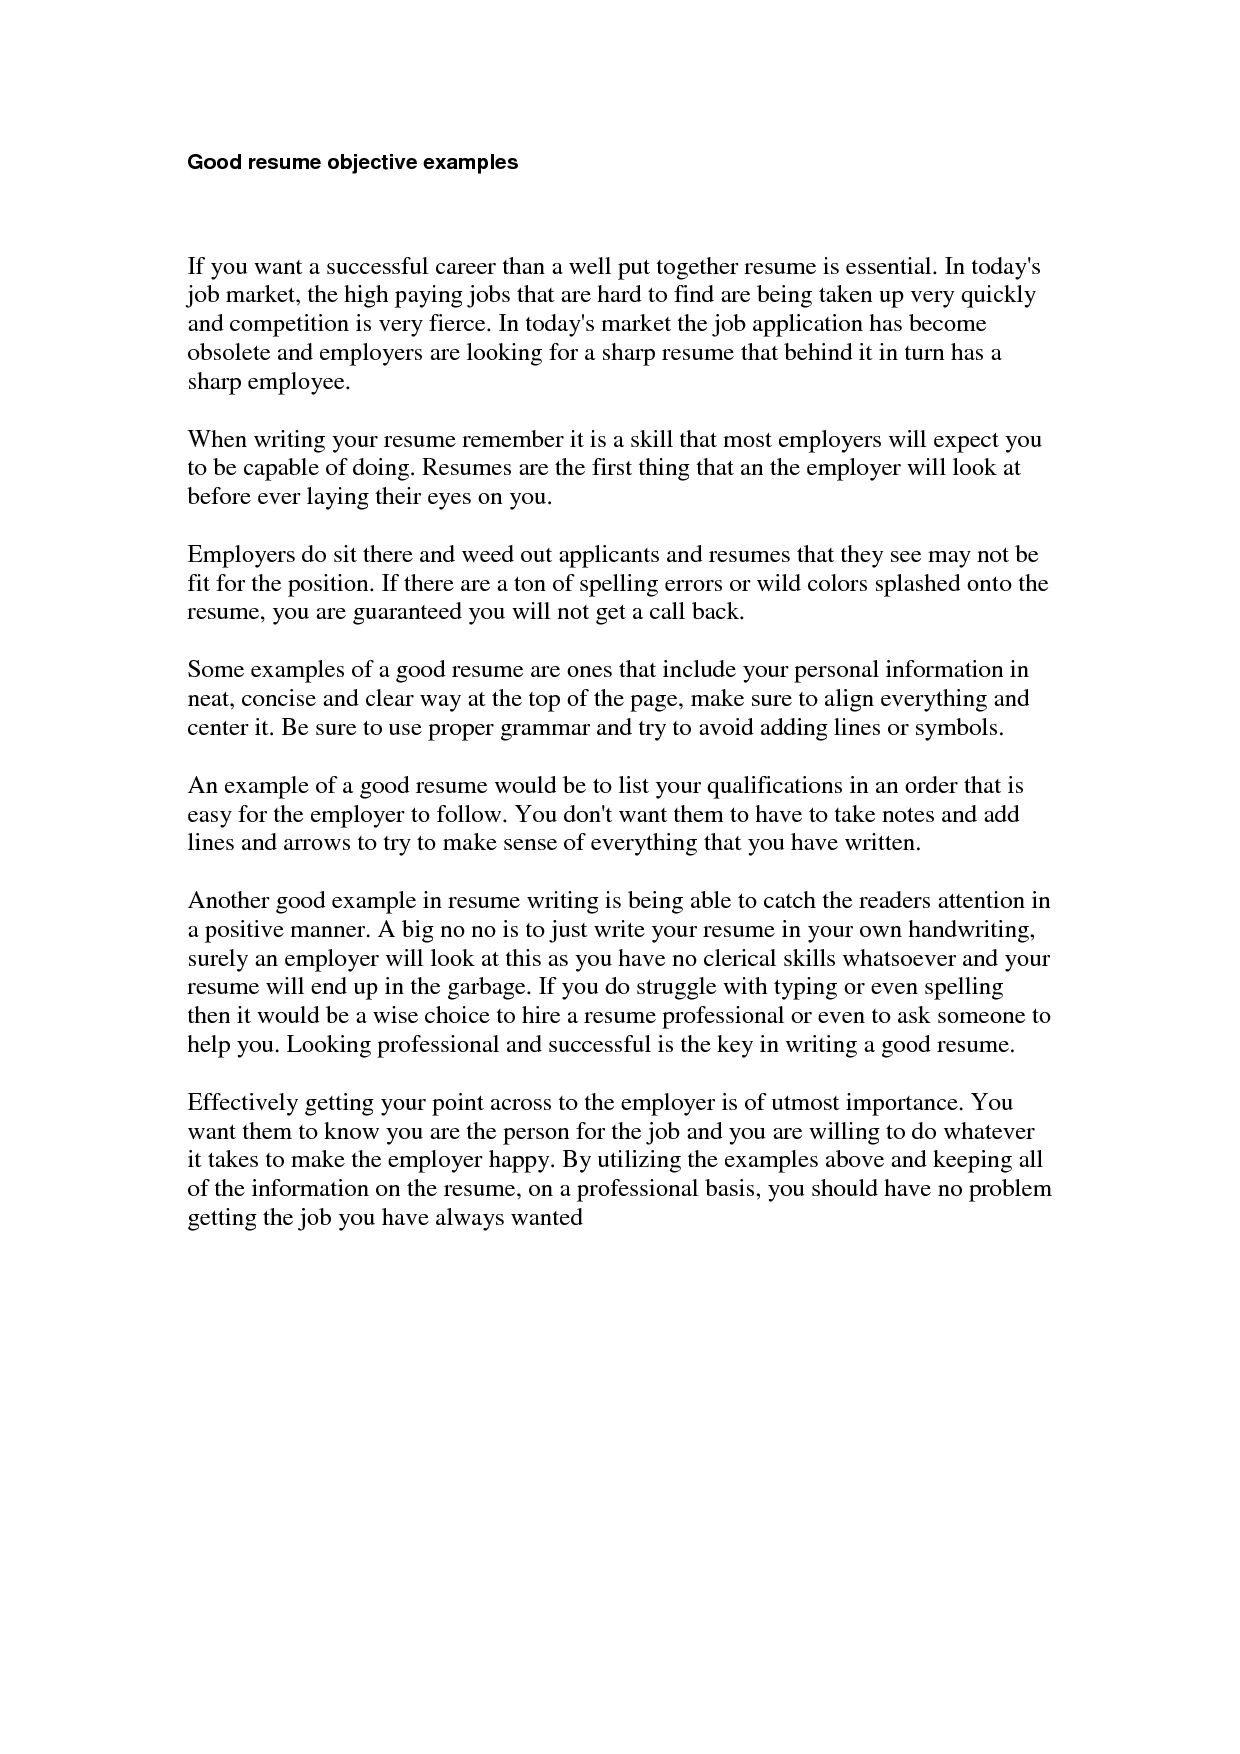 good job examples gethook cover letter template for resume objective ...